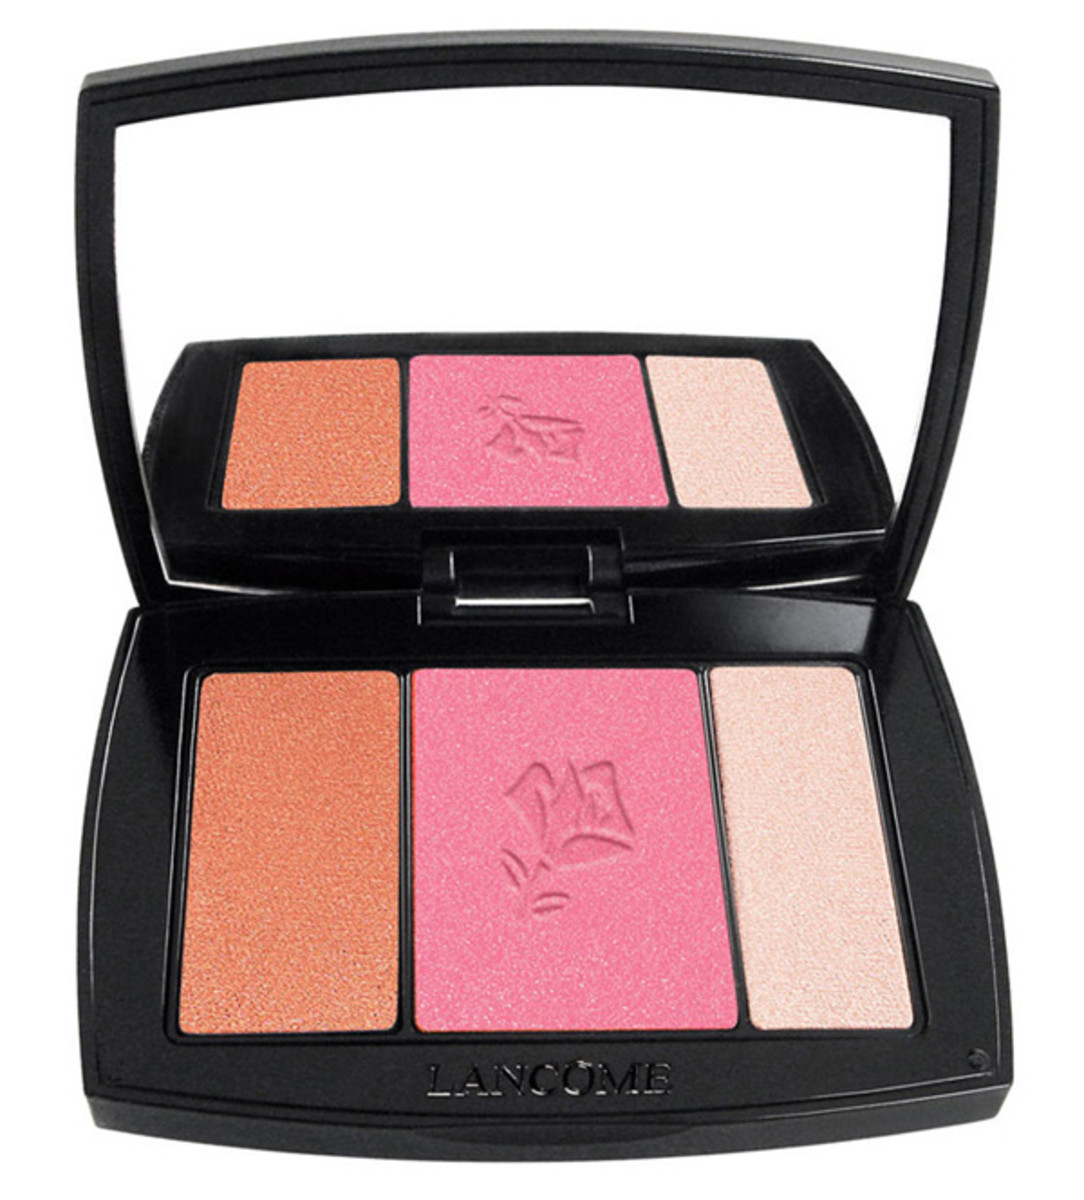 Lancome Blush Subtil Palette in Menage a Trois